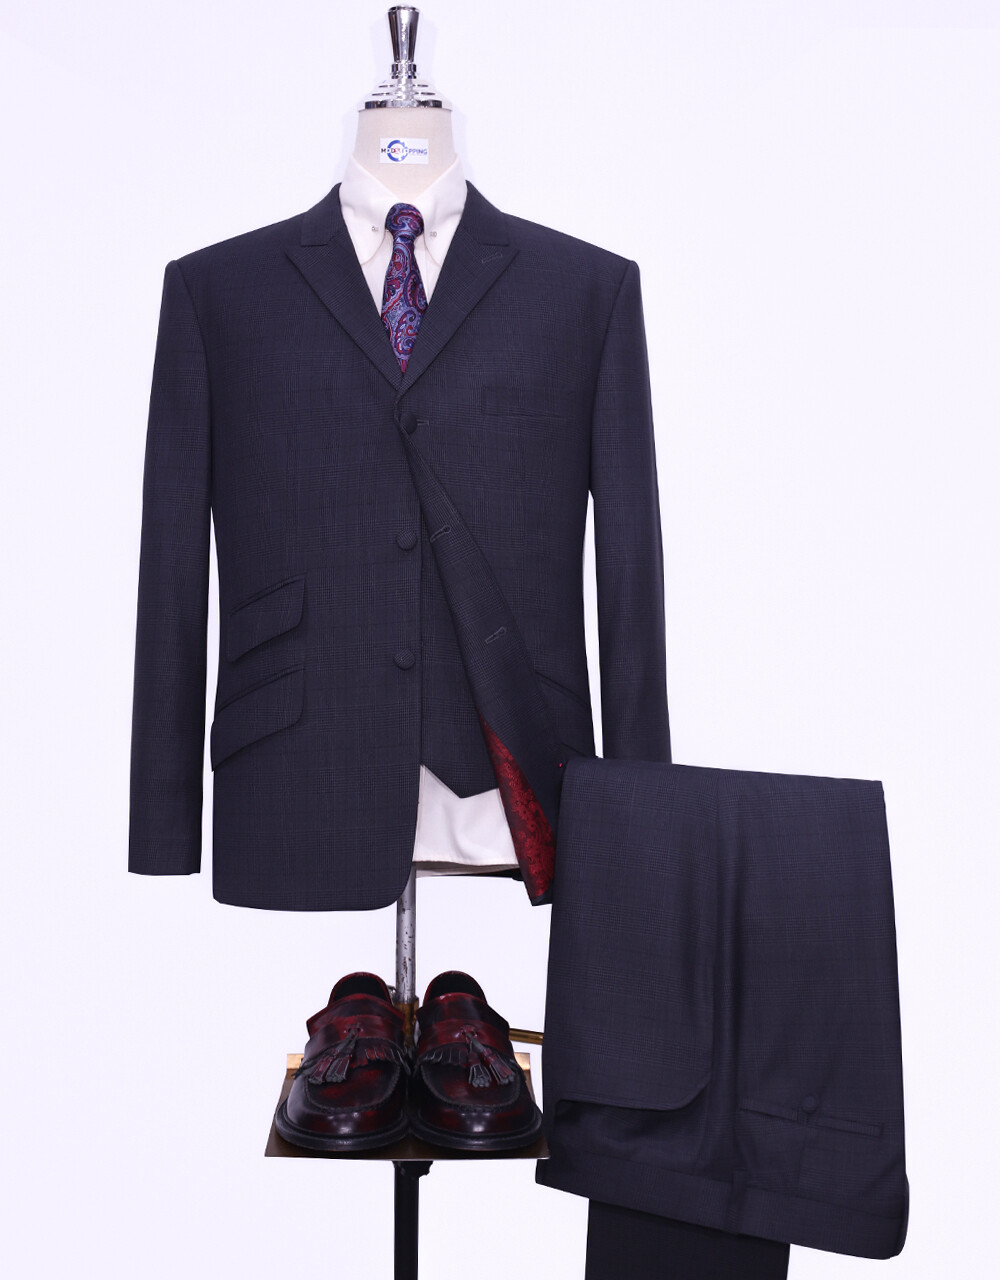 3 Piece Suit   Charcoal Grey Prince Of Wales Check Suit